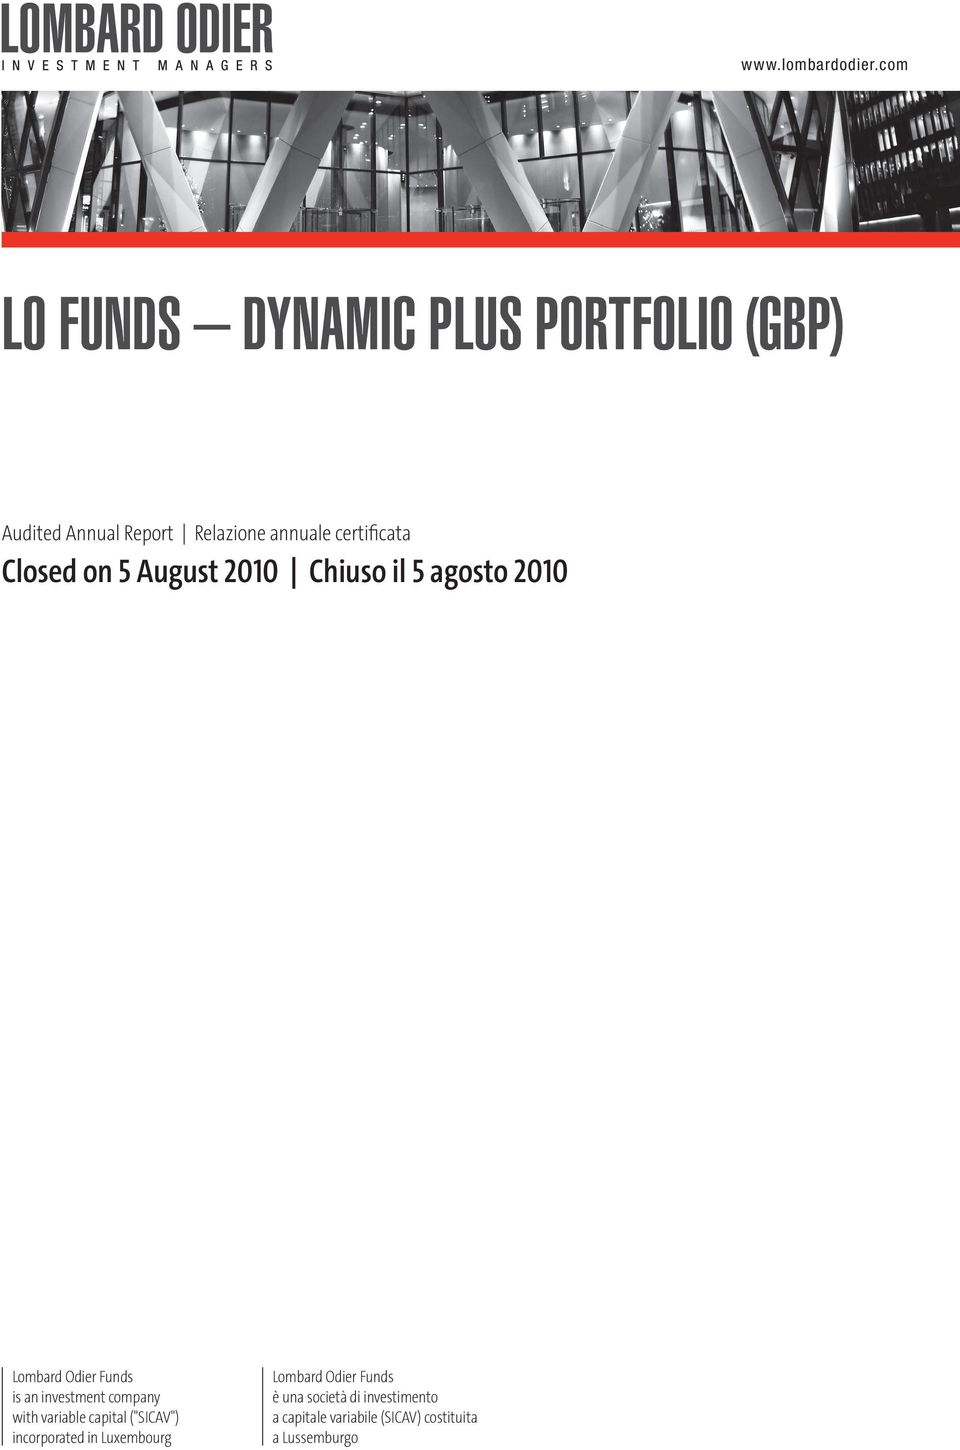 certificata Closed on 5 August 2010 Chiuso il 5 agosto 2010 Lombard Odier Funds is an